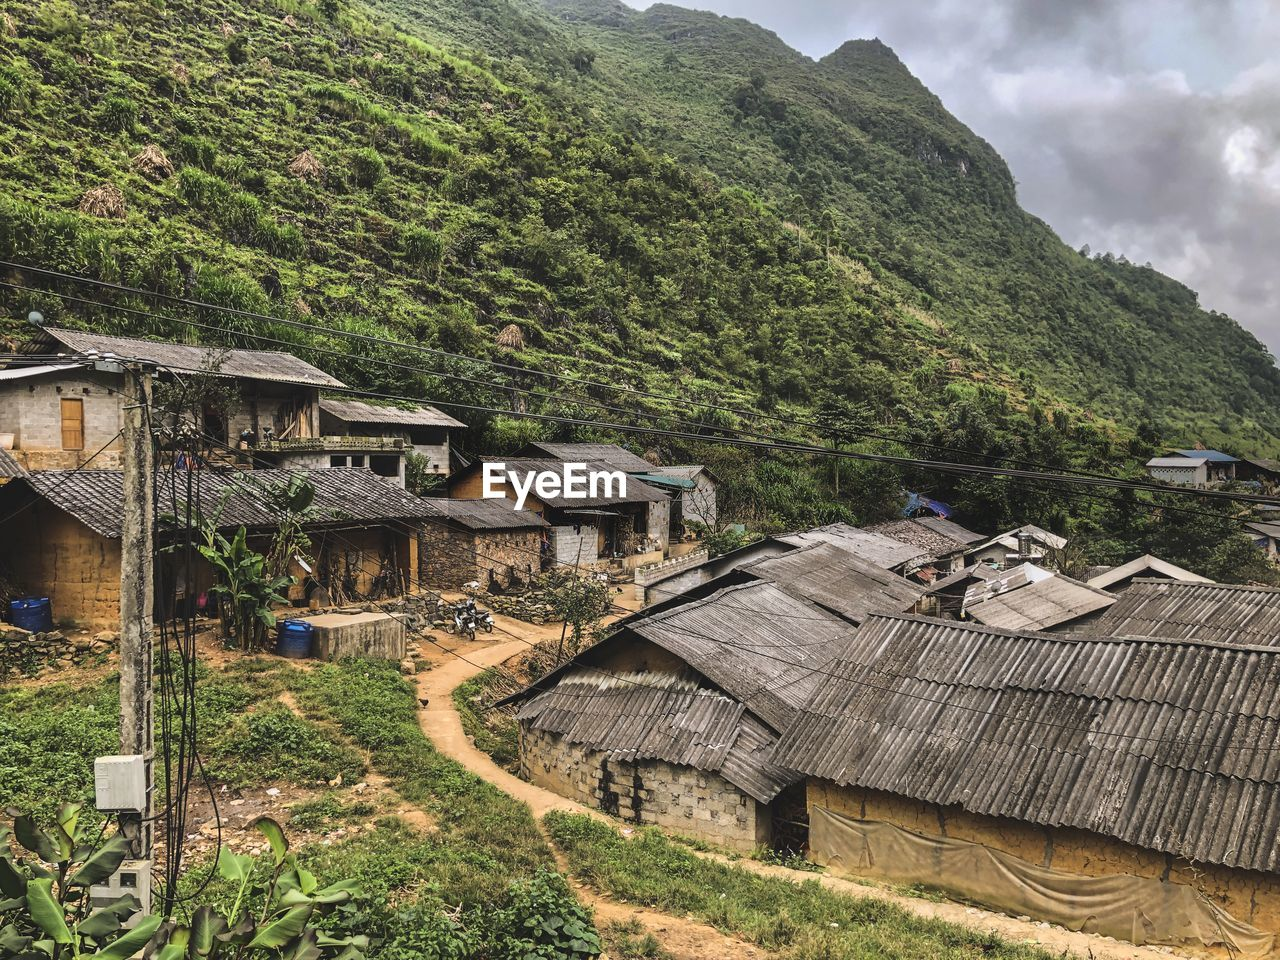 HIGH ANGLE VIEW OF HOUSES AND TREES ON MOUNTAIN